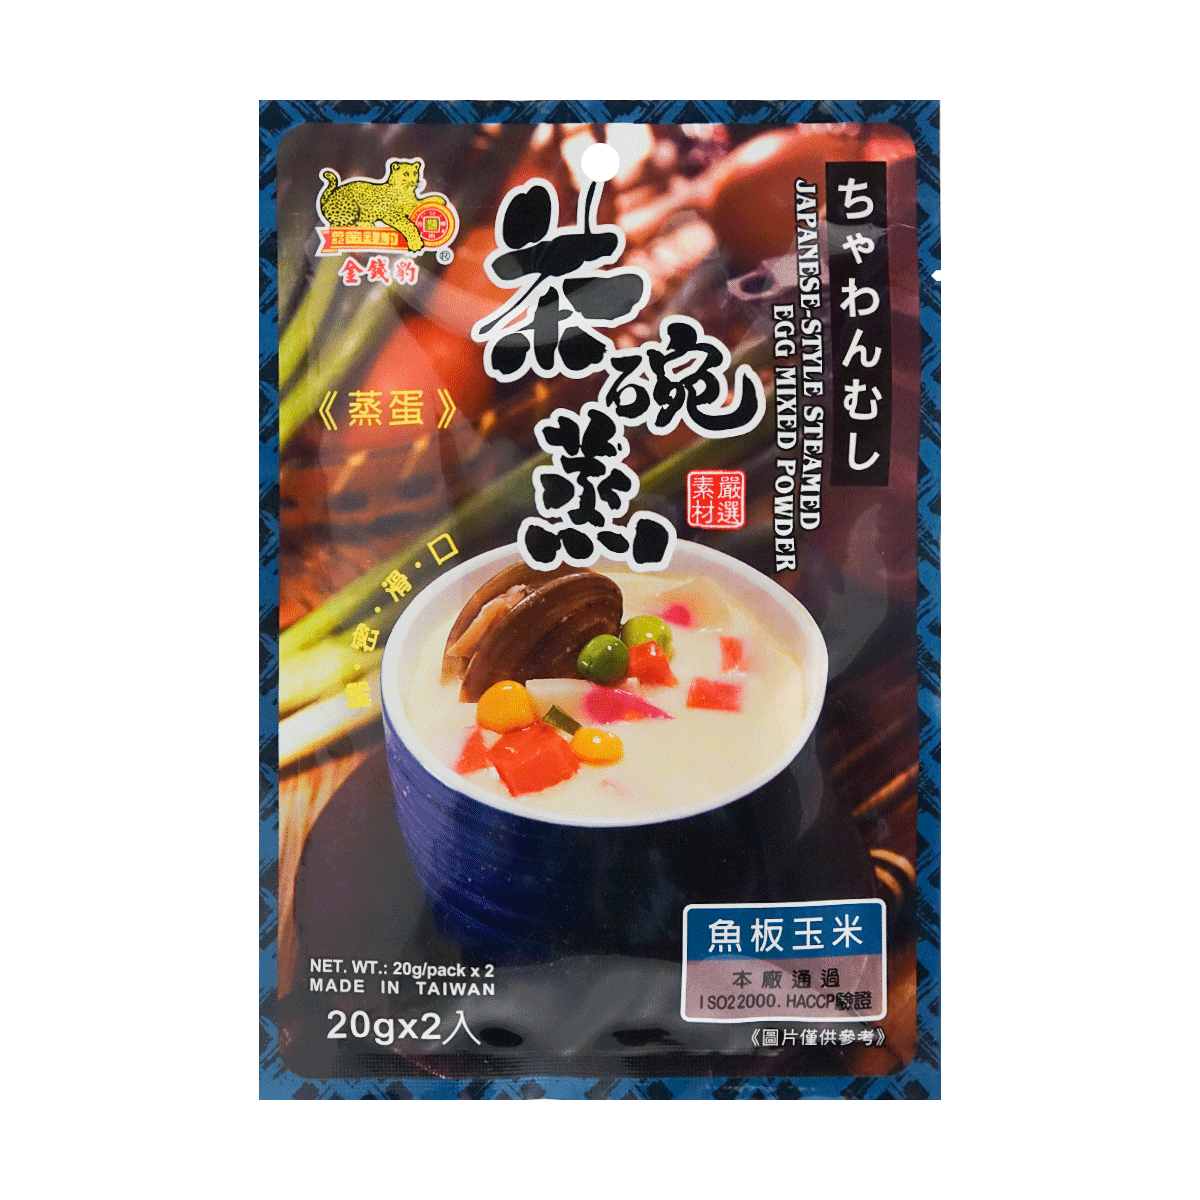 Yamibuy.com:Customer reviews:JAGUAR Japanese- Style Steamed Egg Mixed Powder (Fish Product & Corn) 20g*2